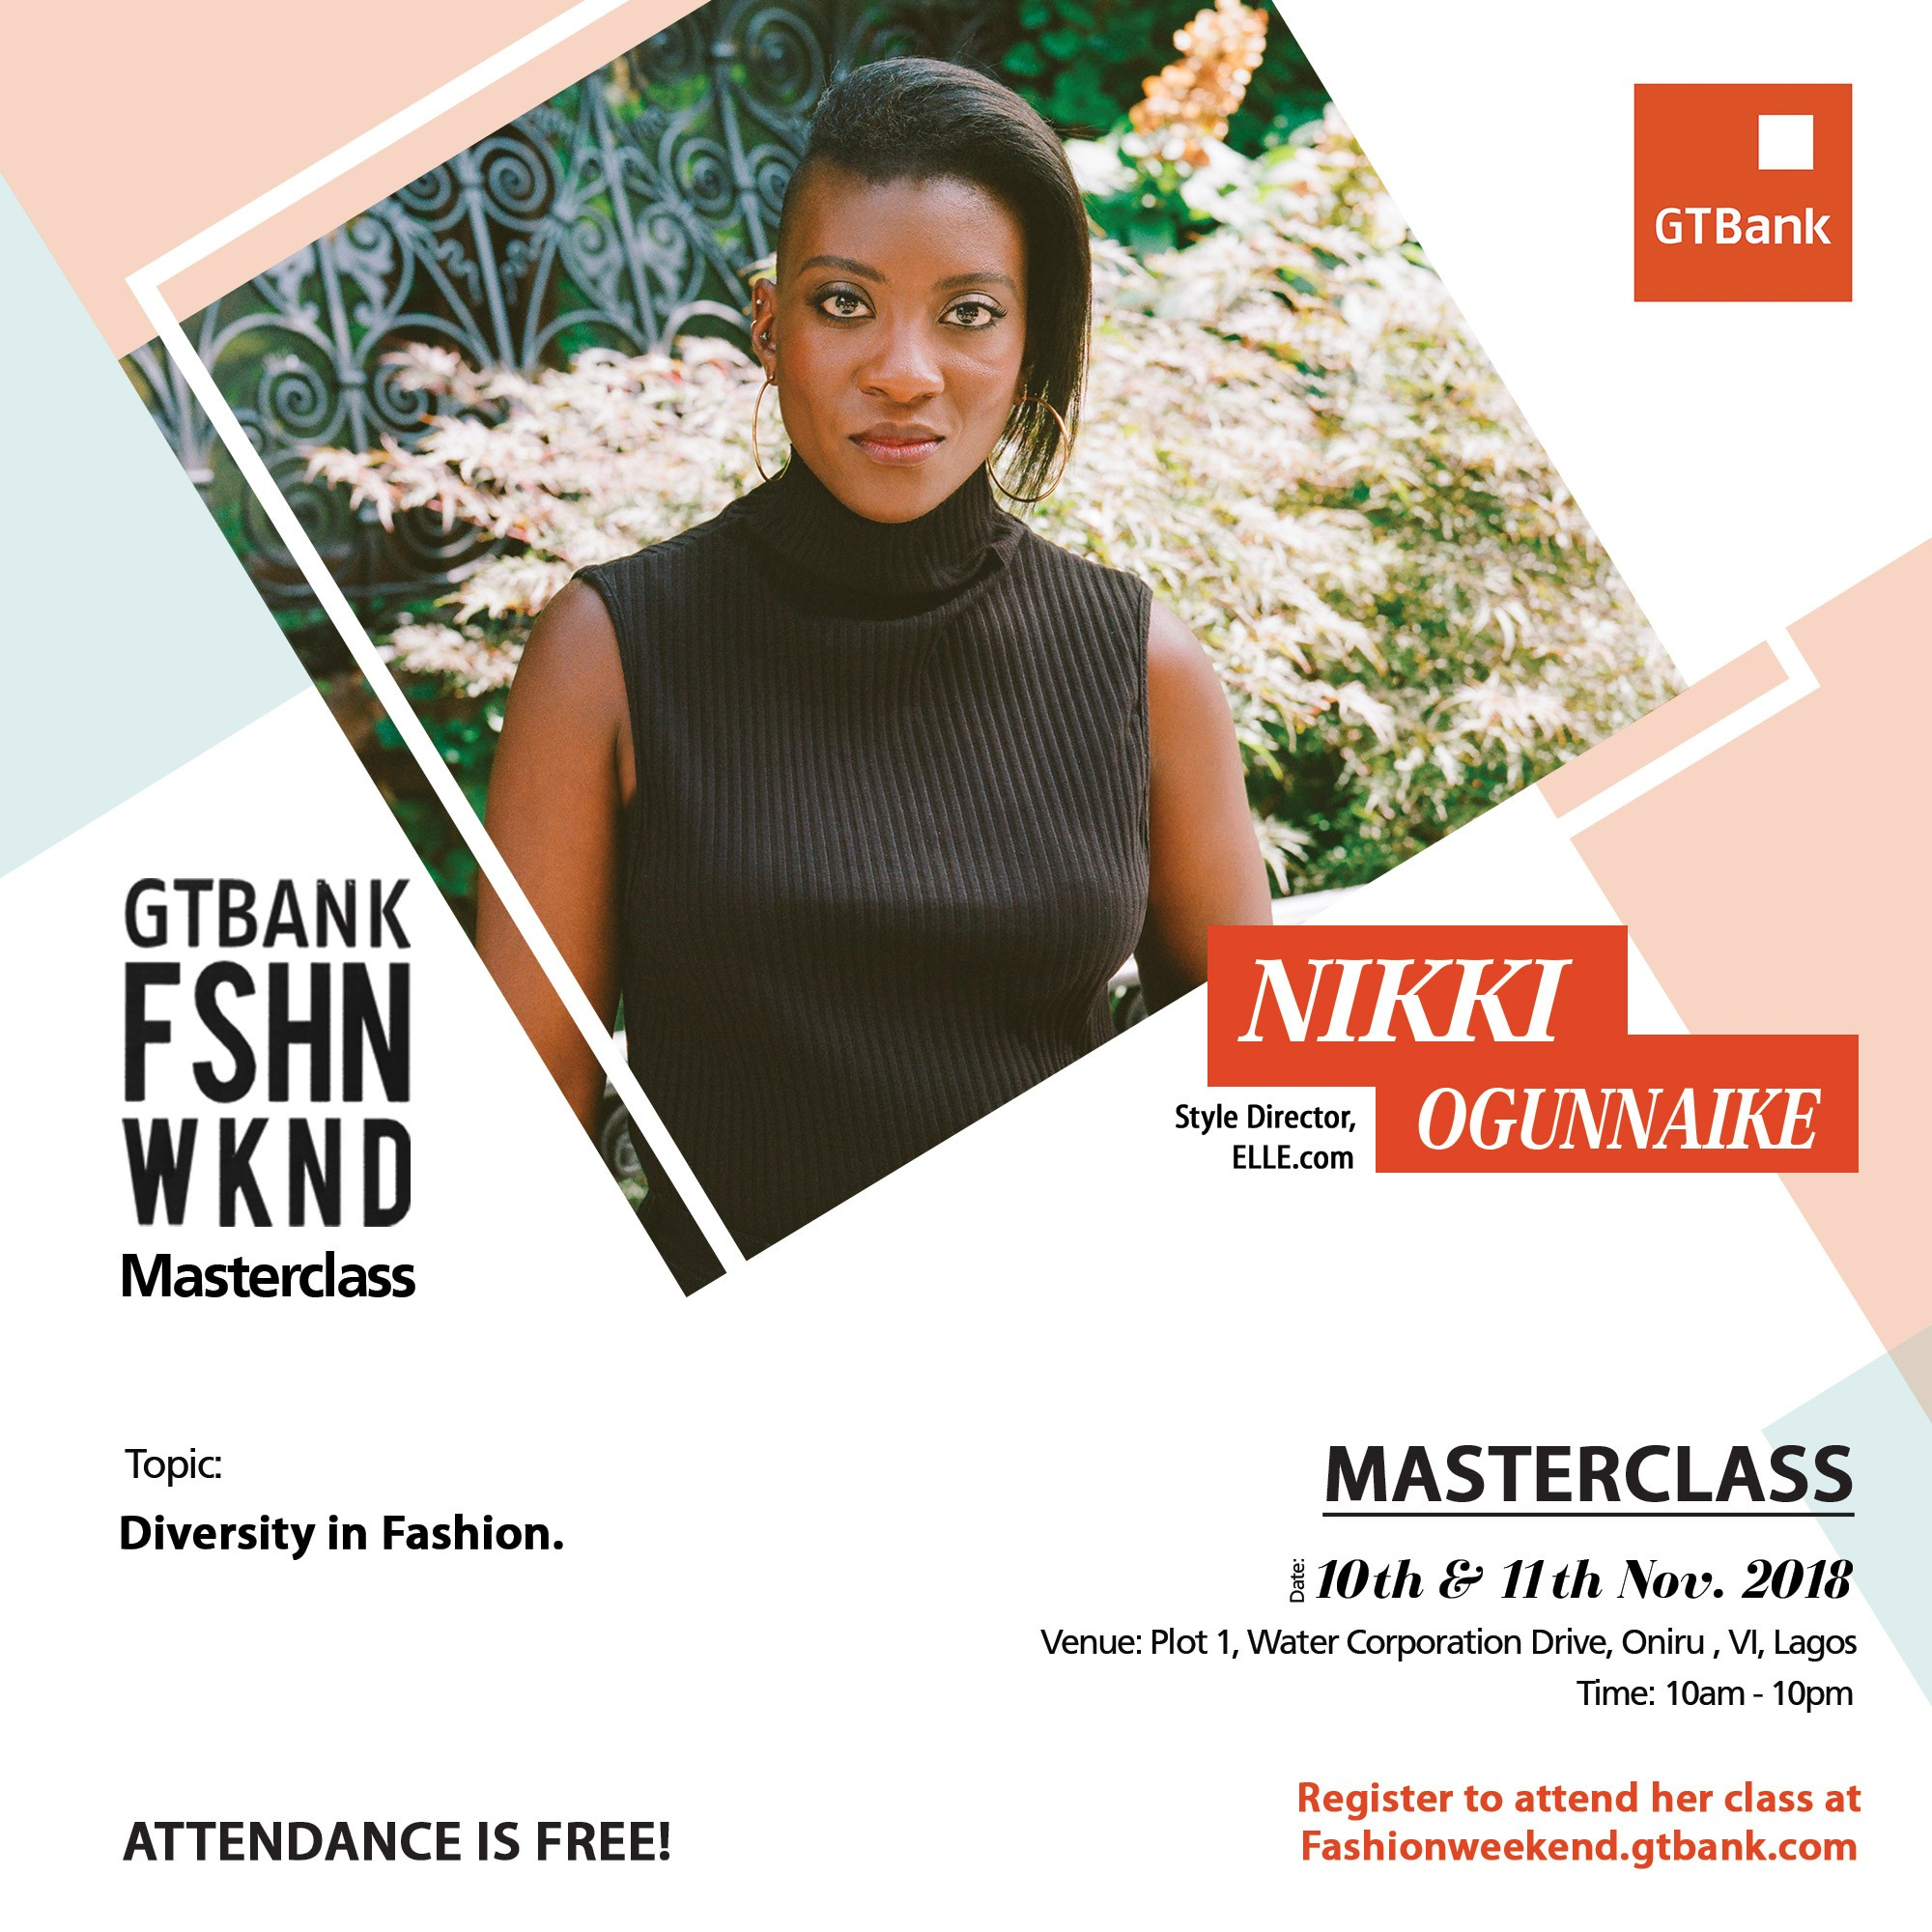 Join Style Director, Nikki Ogunnaike as she discusses Diversity in Fashion during her Masterclass at the 2018 GTBank Fashion Weekend